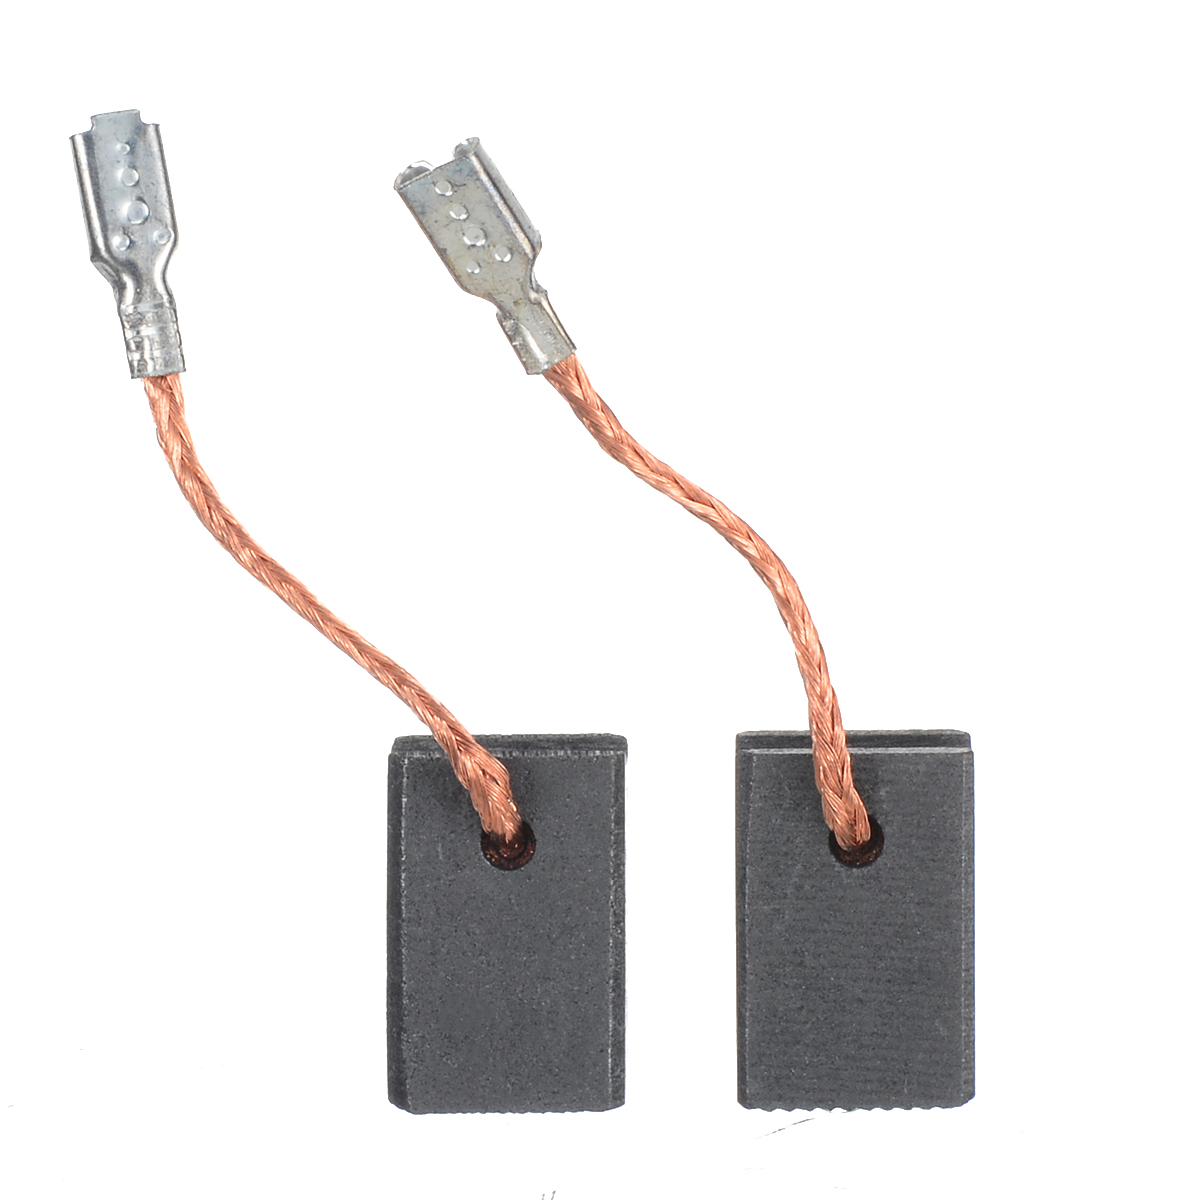 1Pair Motor Carbon Brushes GWS14-150 Carbon Brush 5x10x17mm For Bosch 125CI 15-150CIH 10-125 GOP12CE For Power Tools Accessories